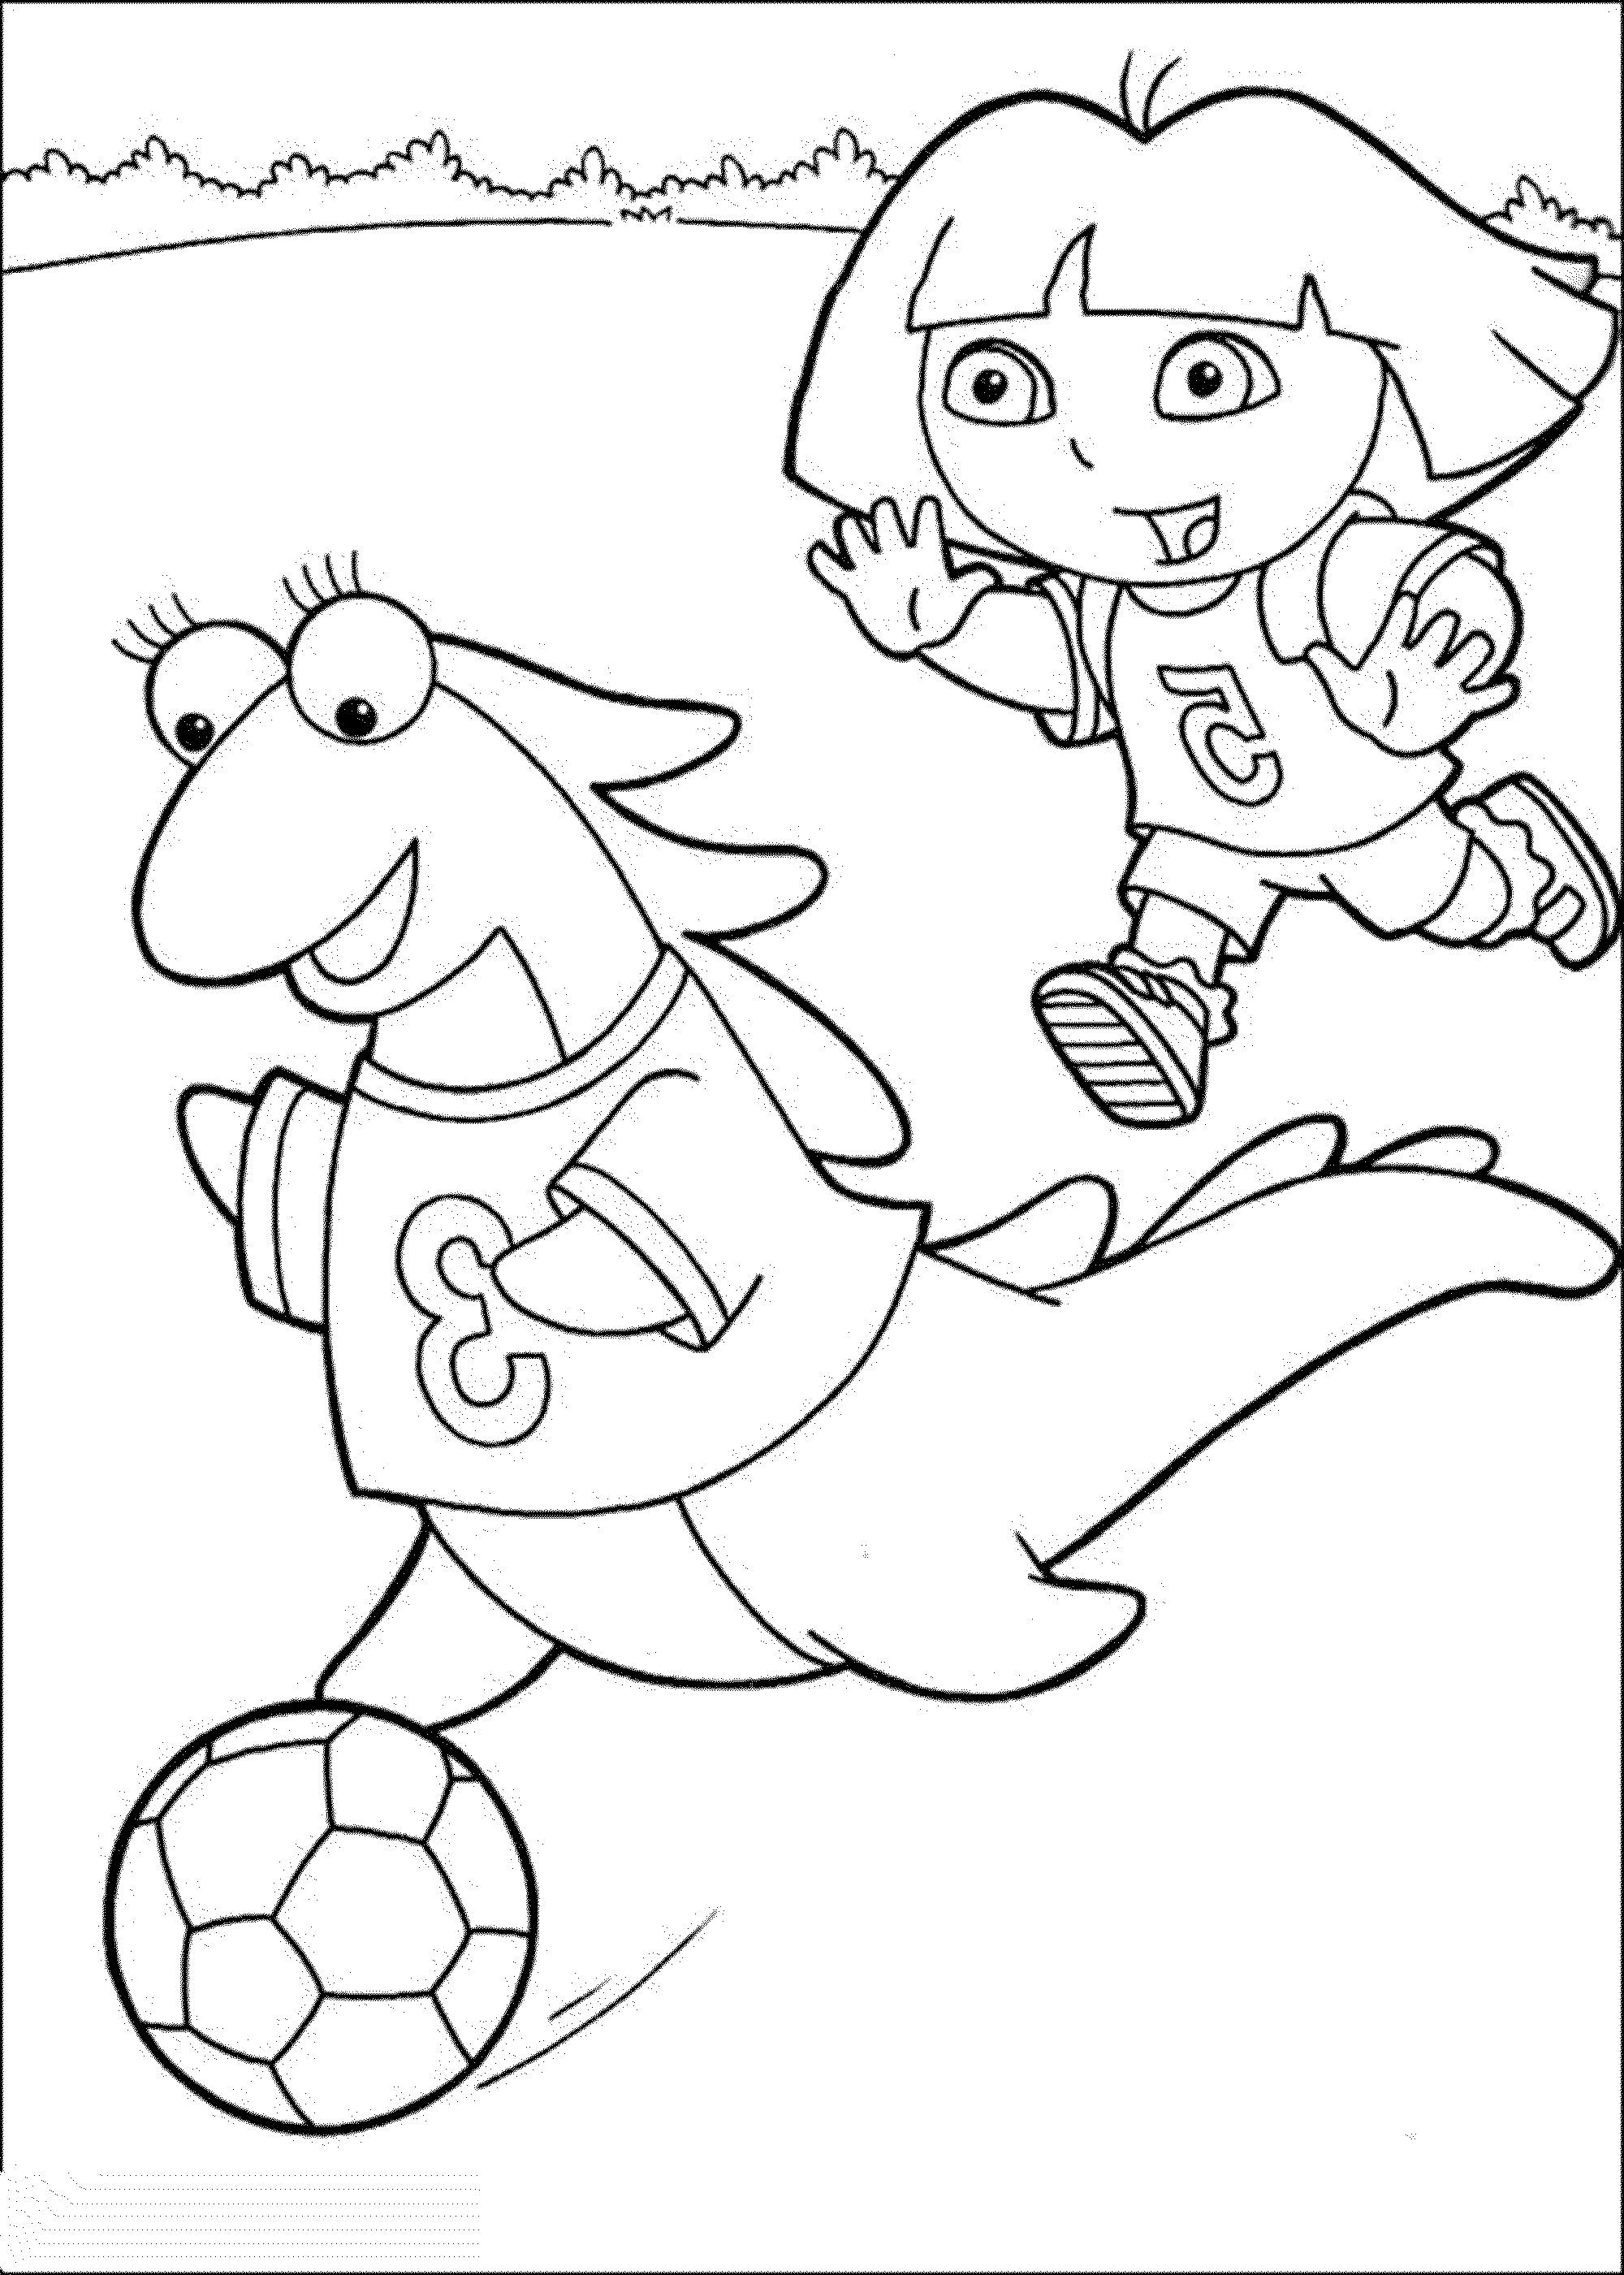 dora colouring pictures print download dora coloring pages to learn new things dora pictures colouring